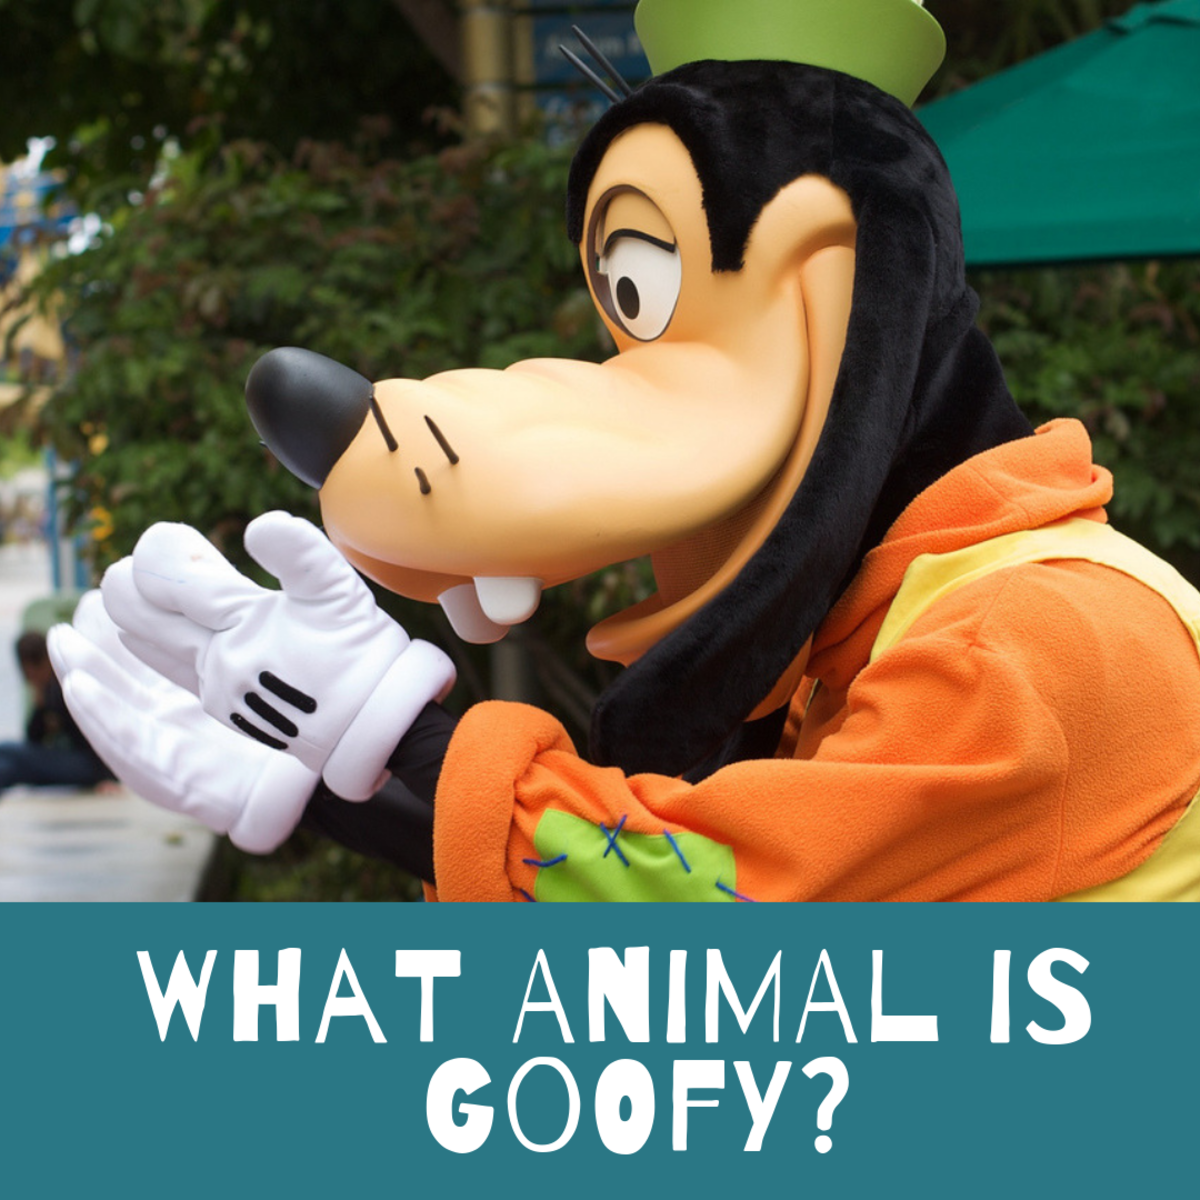 What is Goofy? Dog or cow? The truth about Walt Disney's Goofy cartoon character.